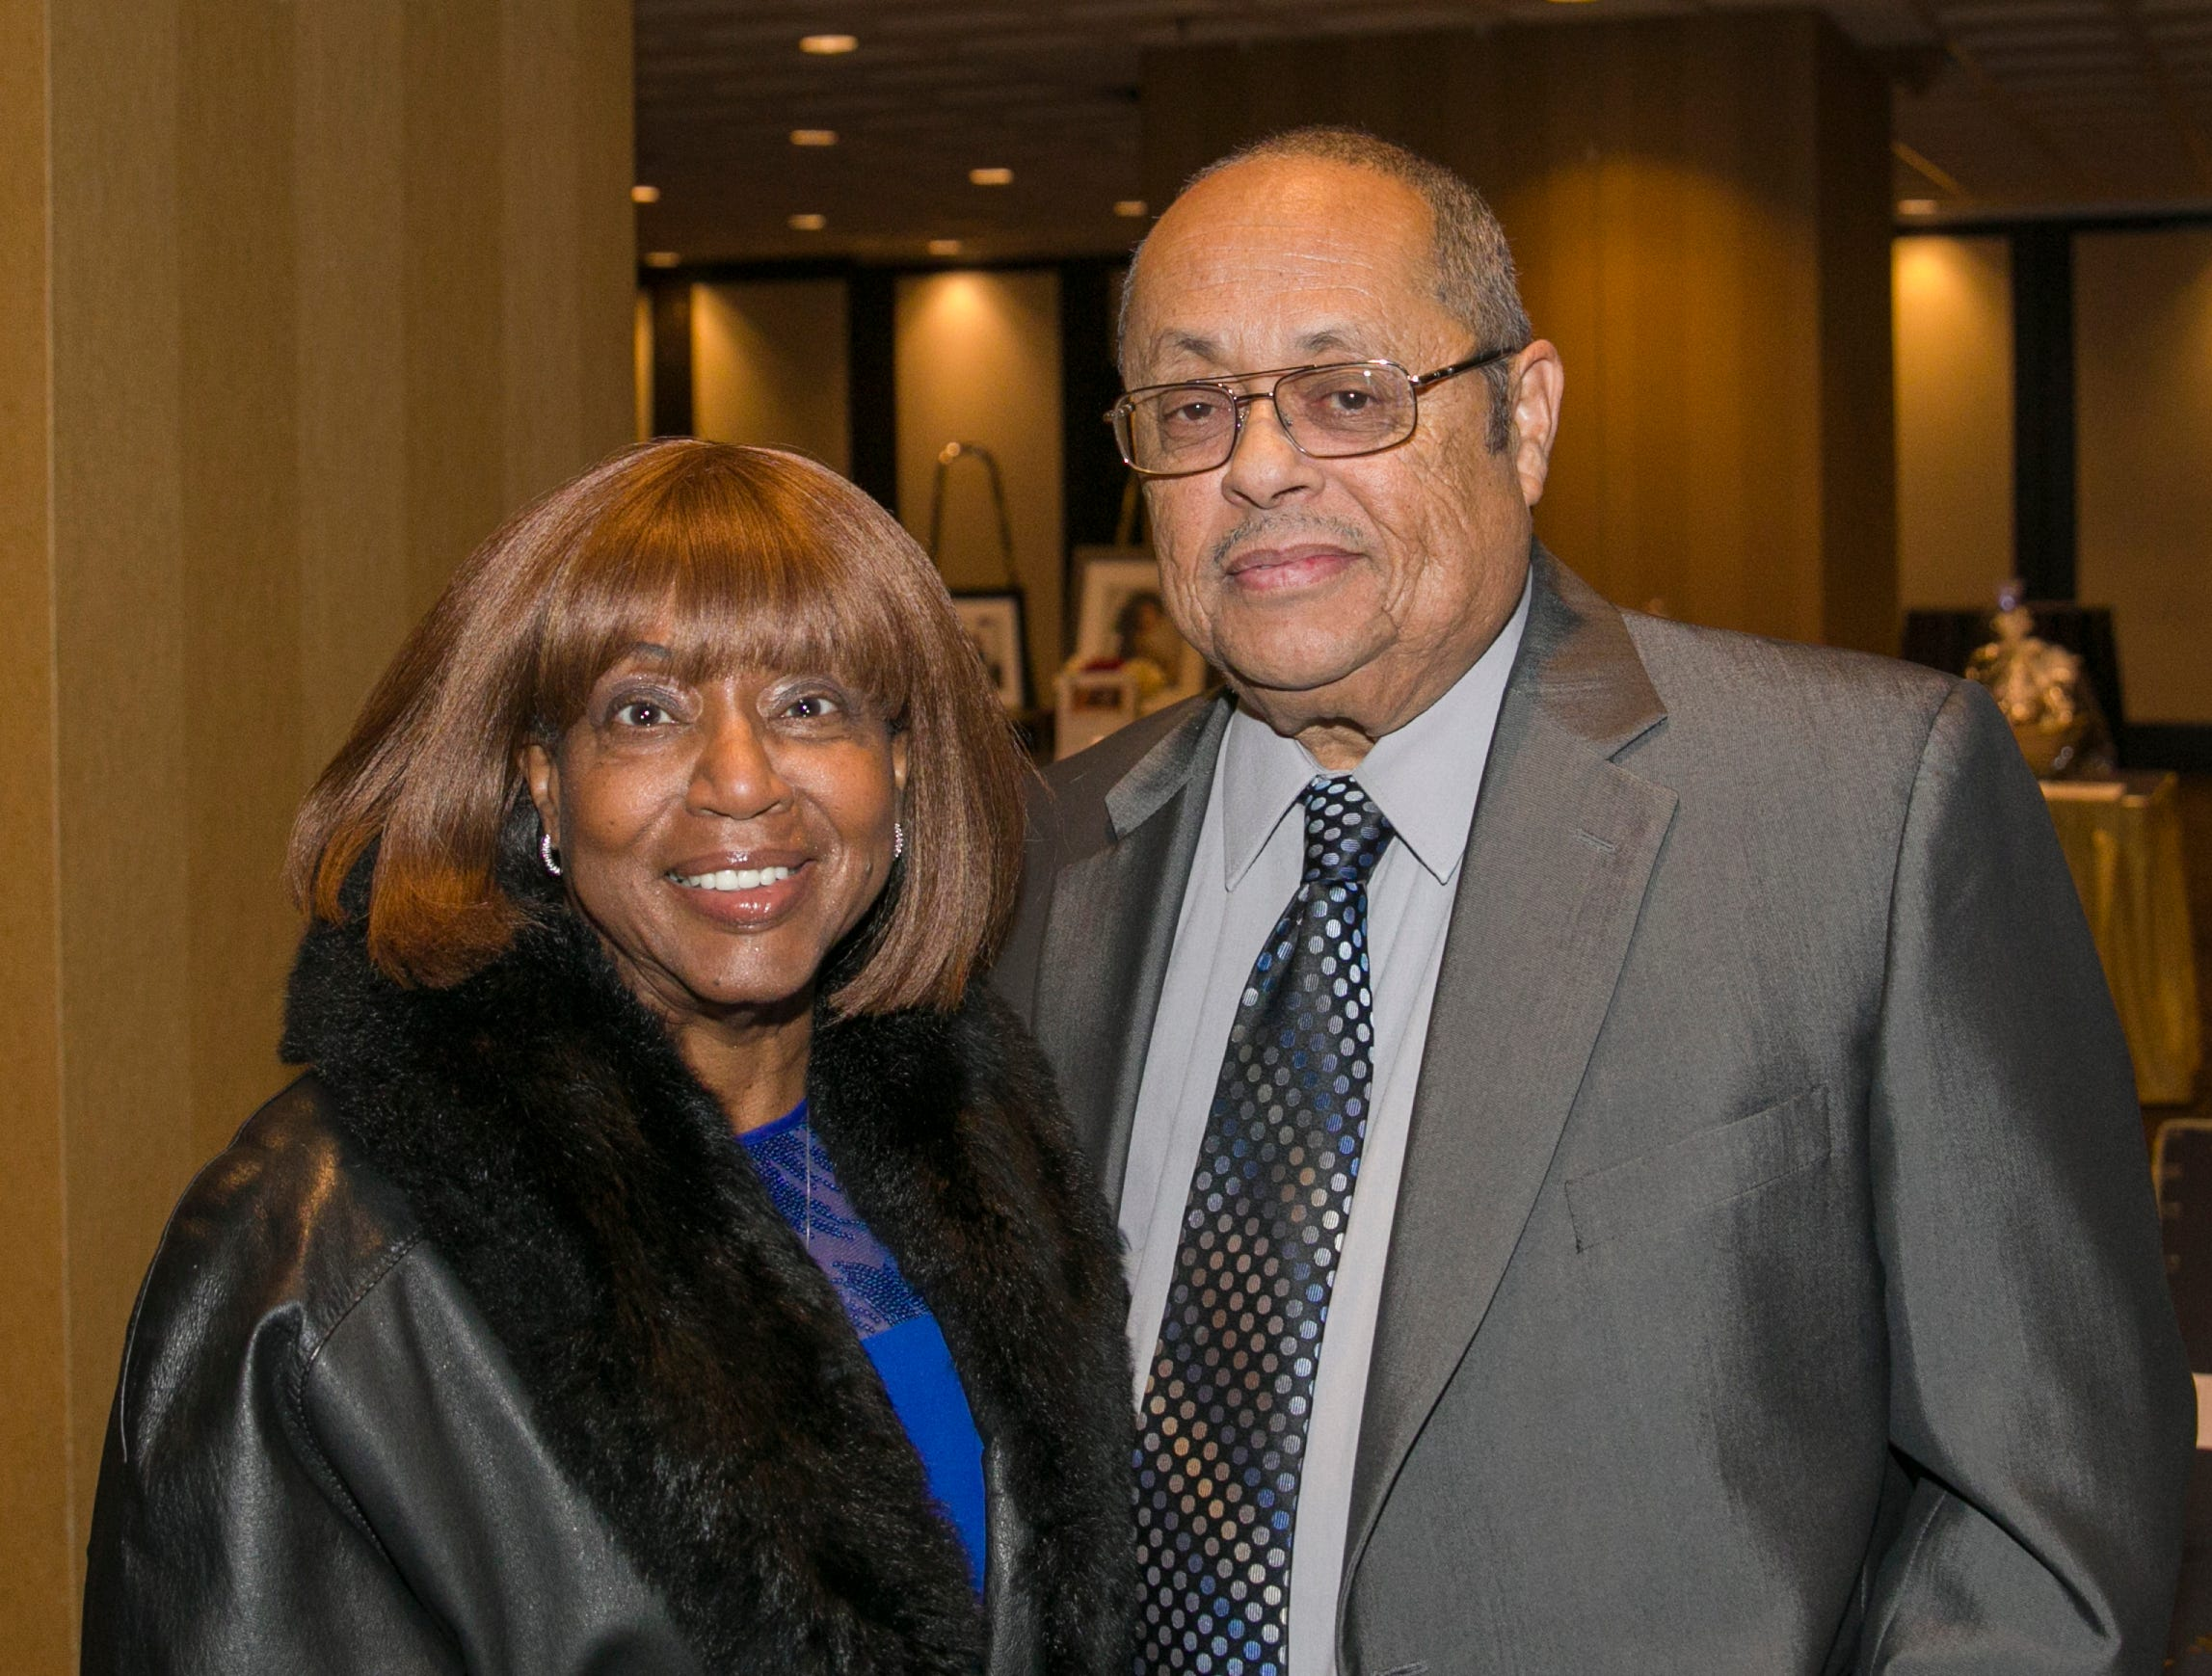 Jerry and Mary Holloway during the 31st Annual Martin Luther King, Jr. Birthday Celebration Dinner at the Atlantis Casino Resort Spa on Monday, January 21, 2109 in Reno, Nevada.